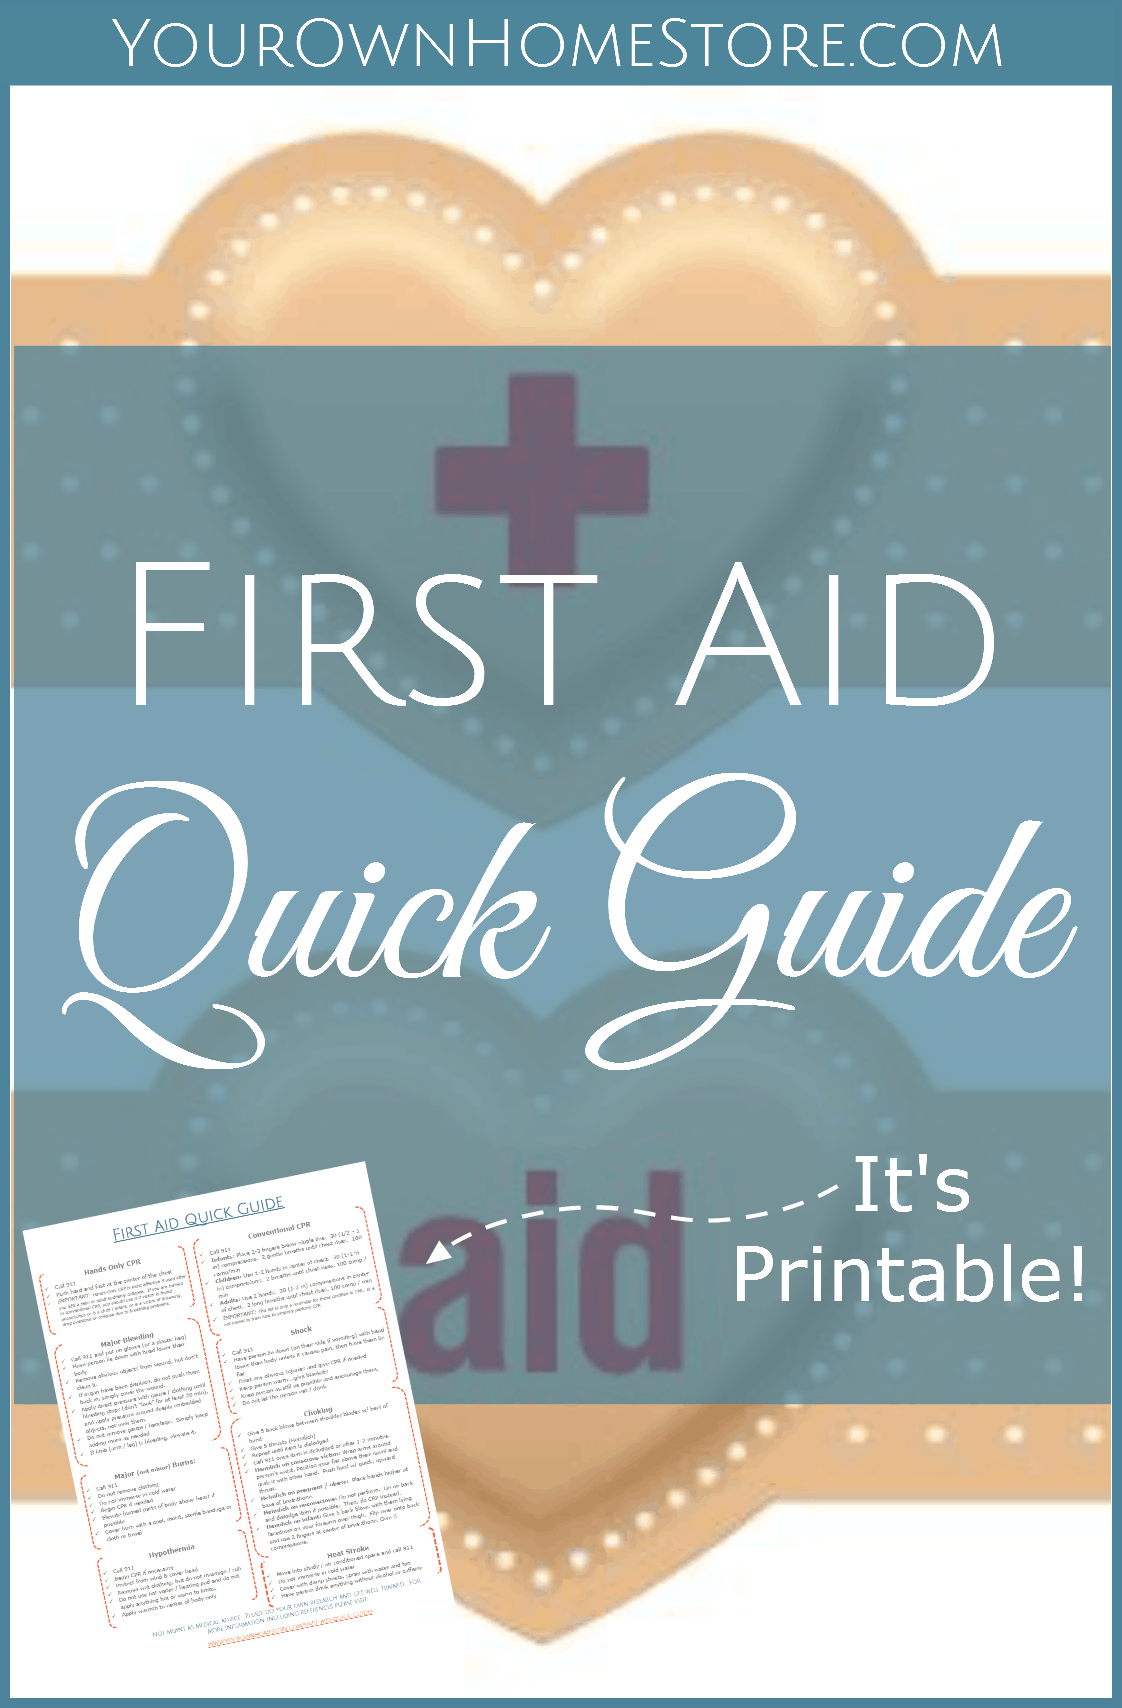 A Printable First Aid Skills Quick Guide